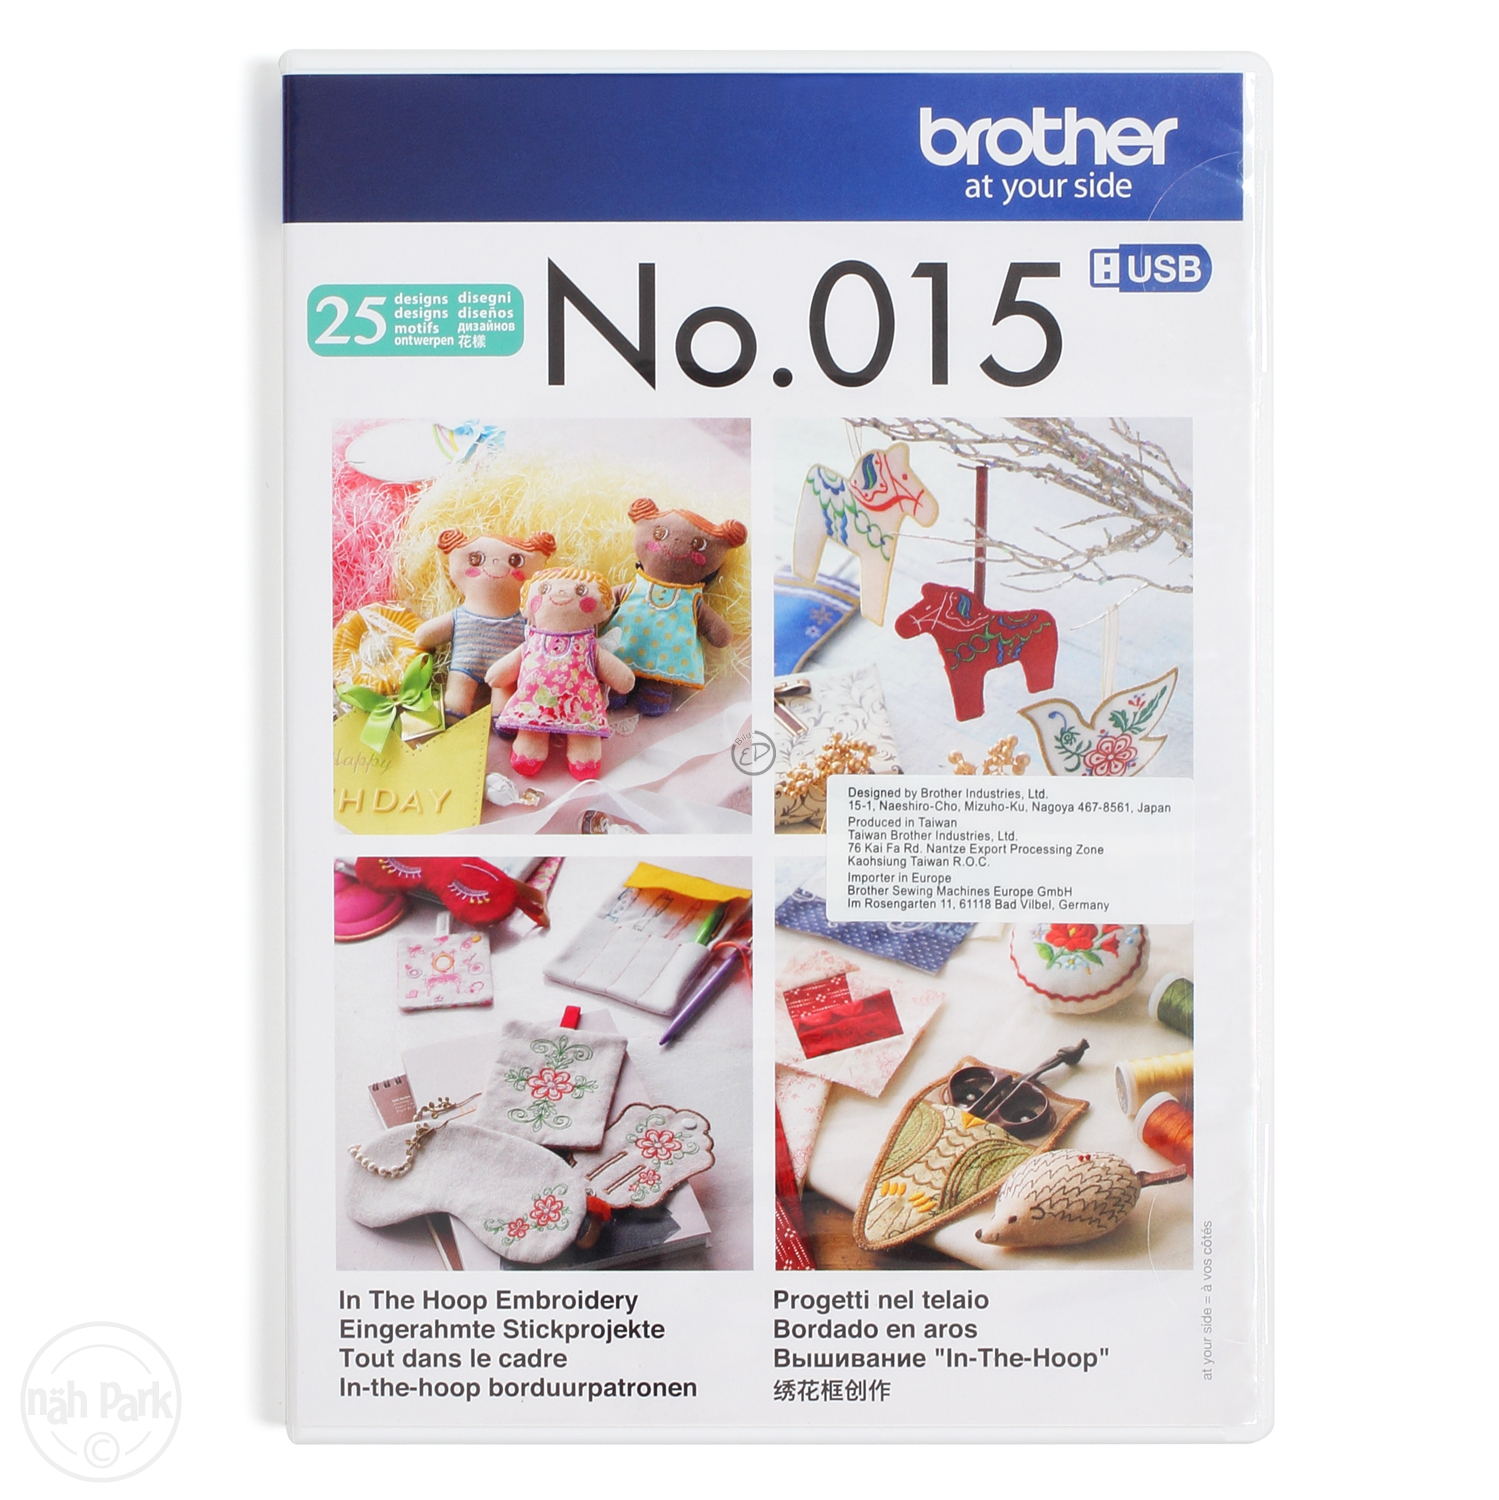 BROTHER Stickmuster USB-Stick 15 Sticken im Rahmen